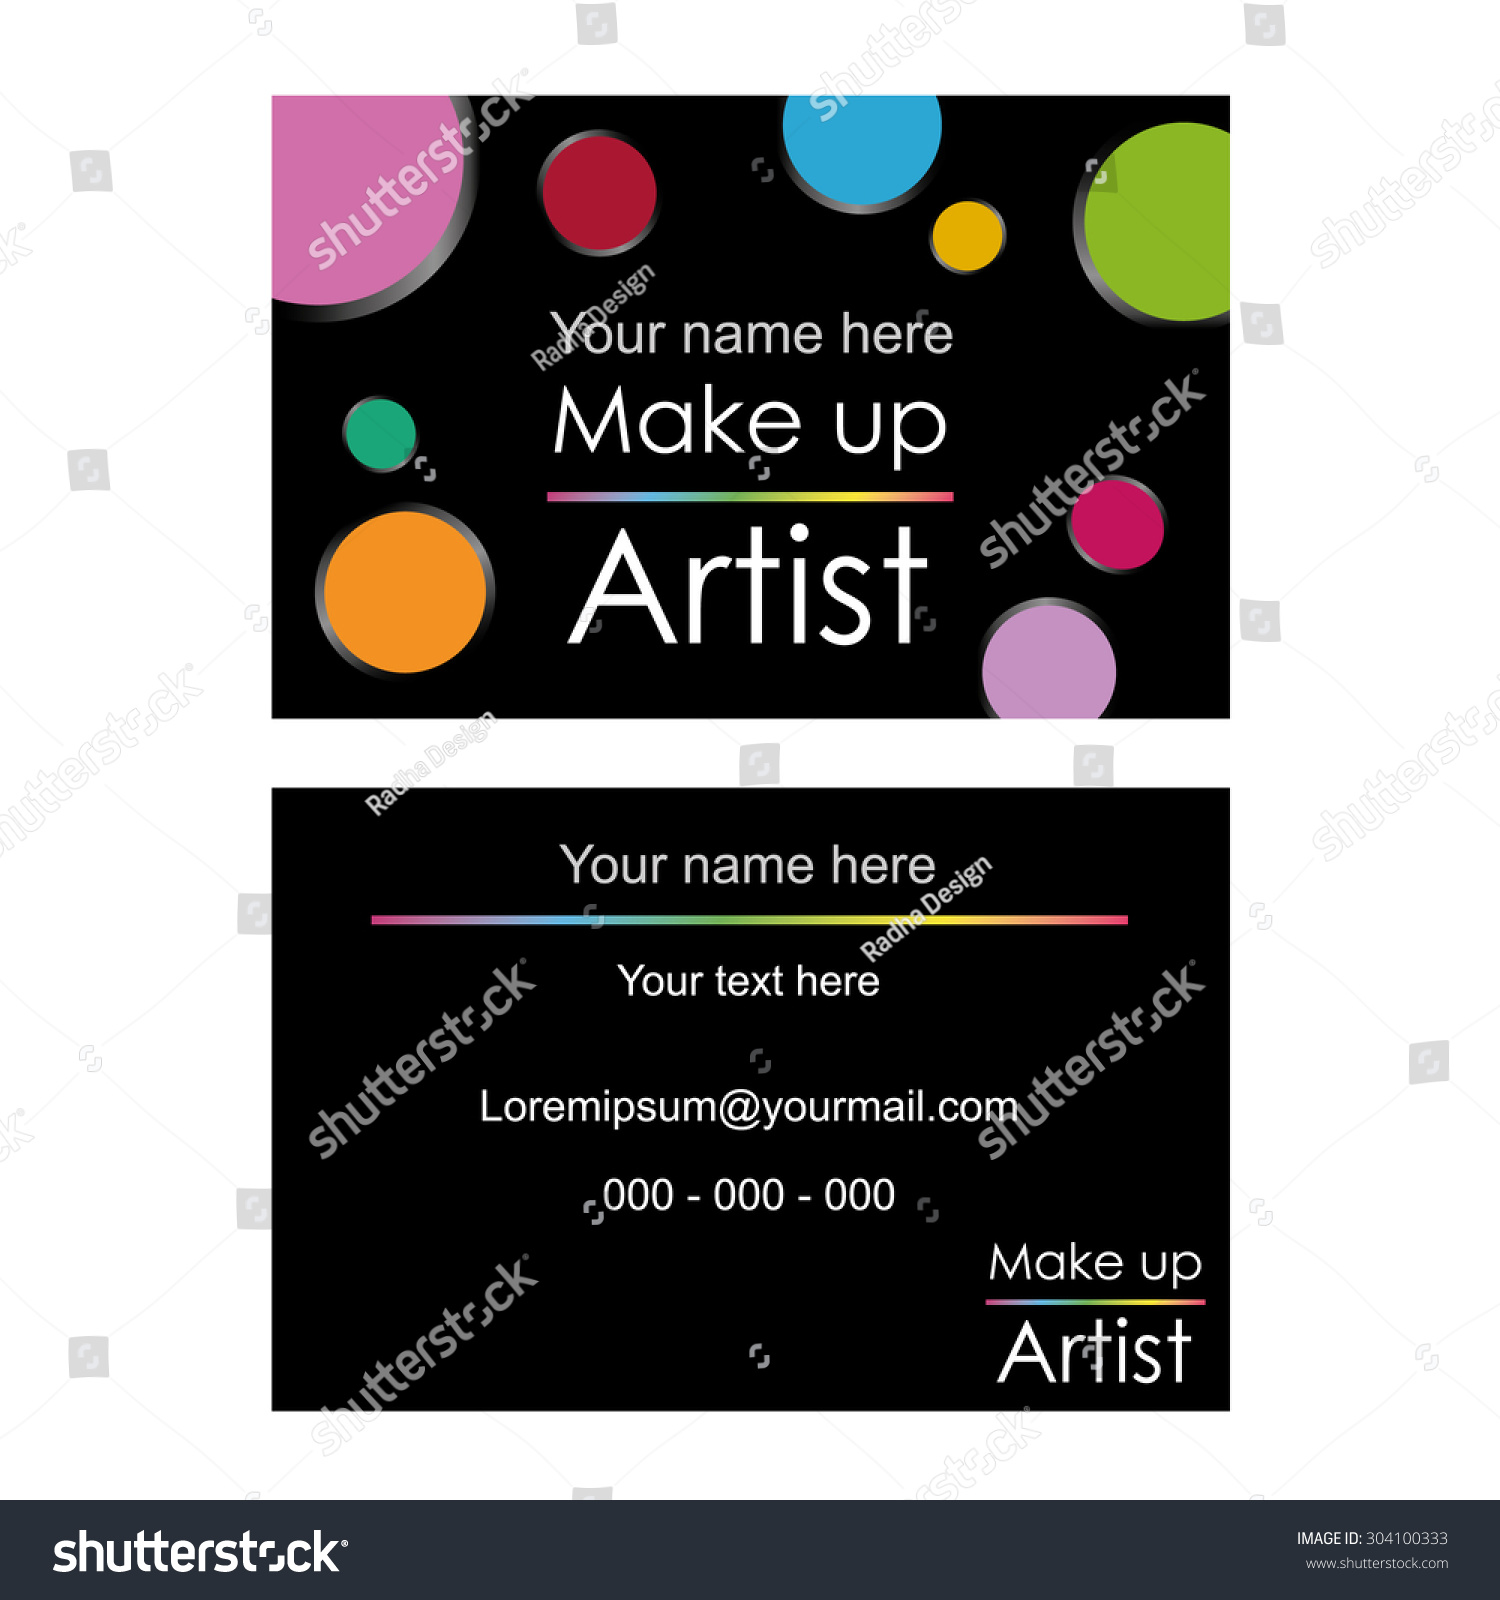 Vector business card exclusive design professional stock vector vector business card exclusive design for professional make up artists text not editable colourmoves